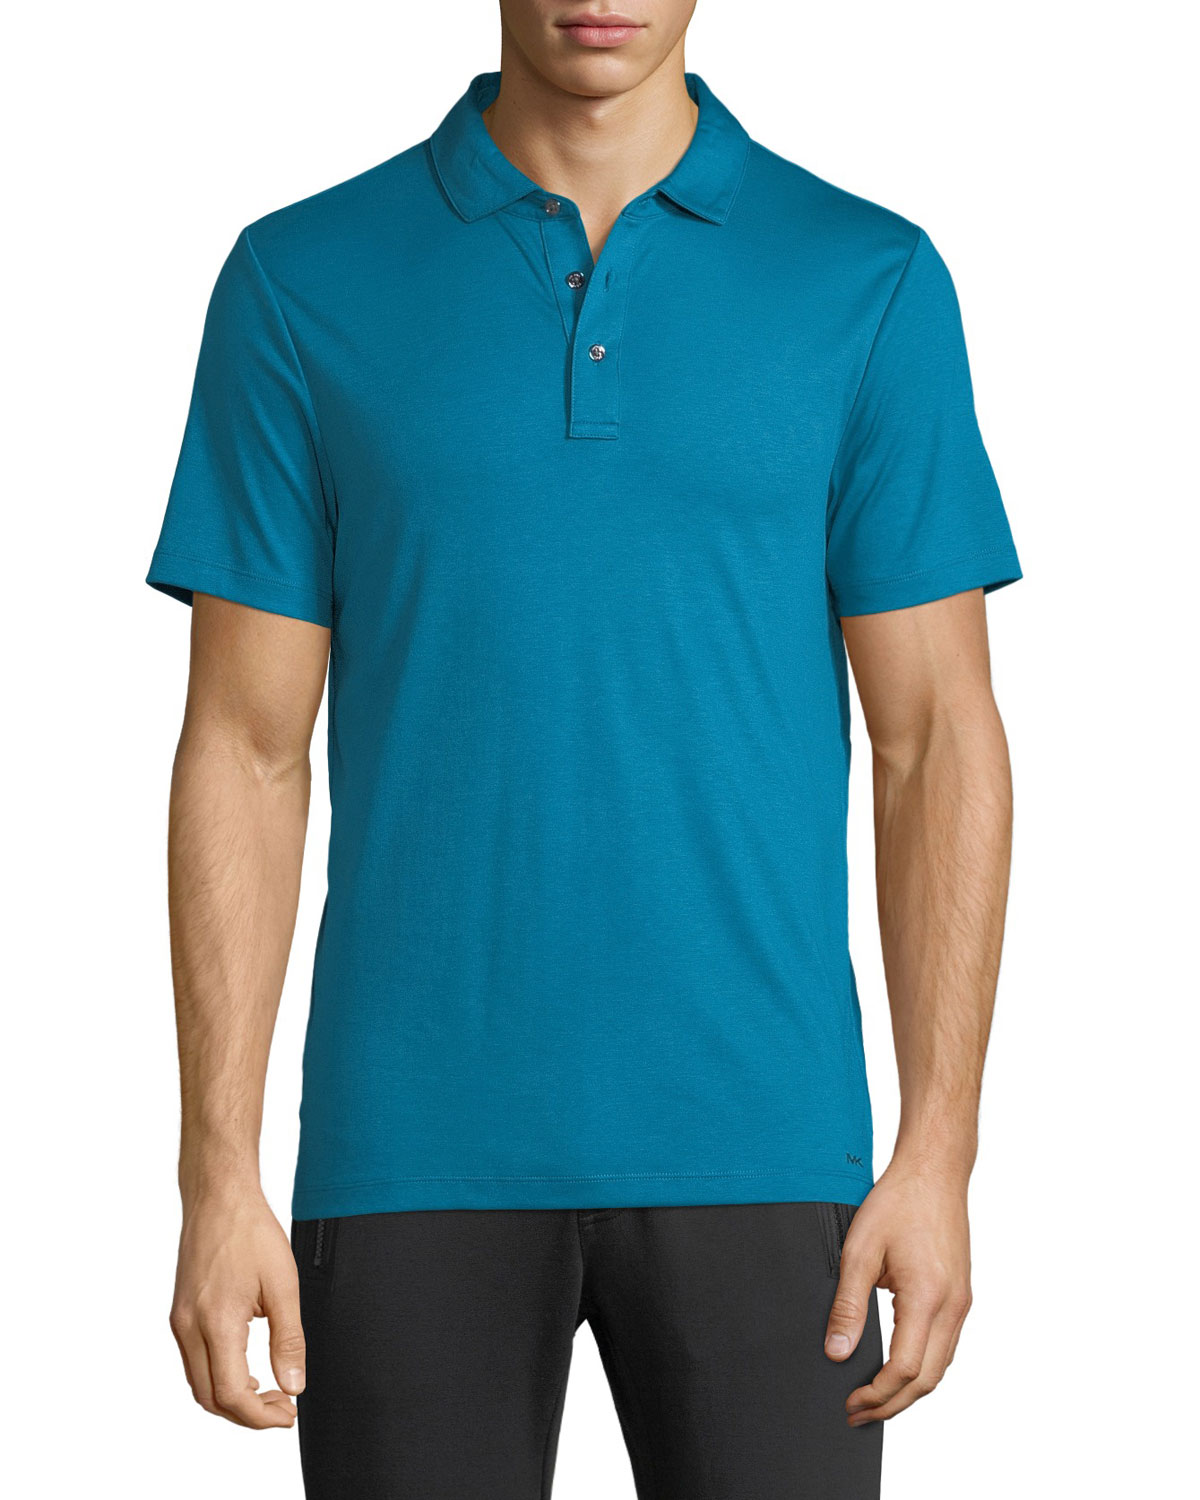 Michael Kors Men's Sleek Jersey Polo Shirt